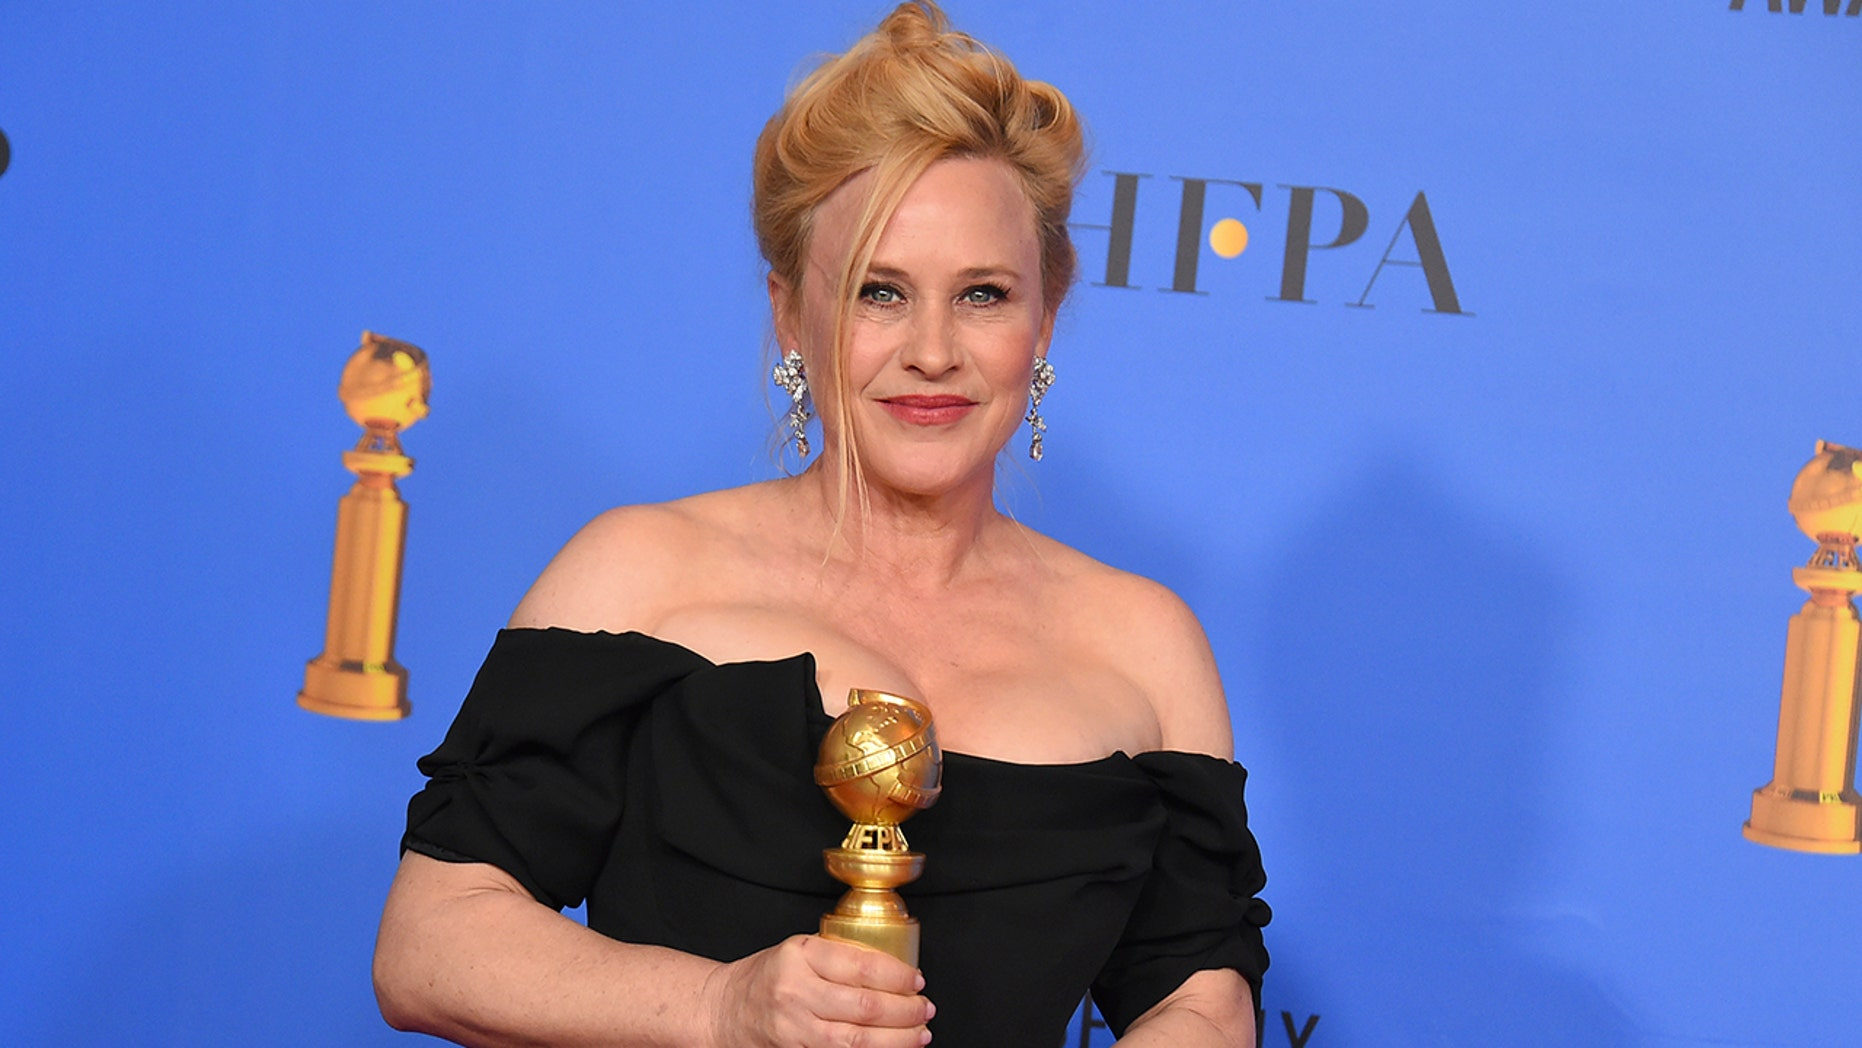 """Patricia Arquette poses in the press room with the award for best performance by an actress in a limited series or a motion picture made for television for """"Escape at Dannemora"""" at the 76th annual Golden Globe Awards at the Beverly Hilton Hotel on Sunday, Jan. 6, 2019, in Beverly Hills, Calif. (Photo by Jordan Strauss/Invision/AP)"""